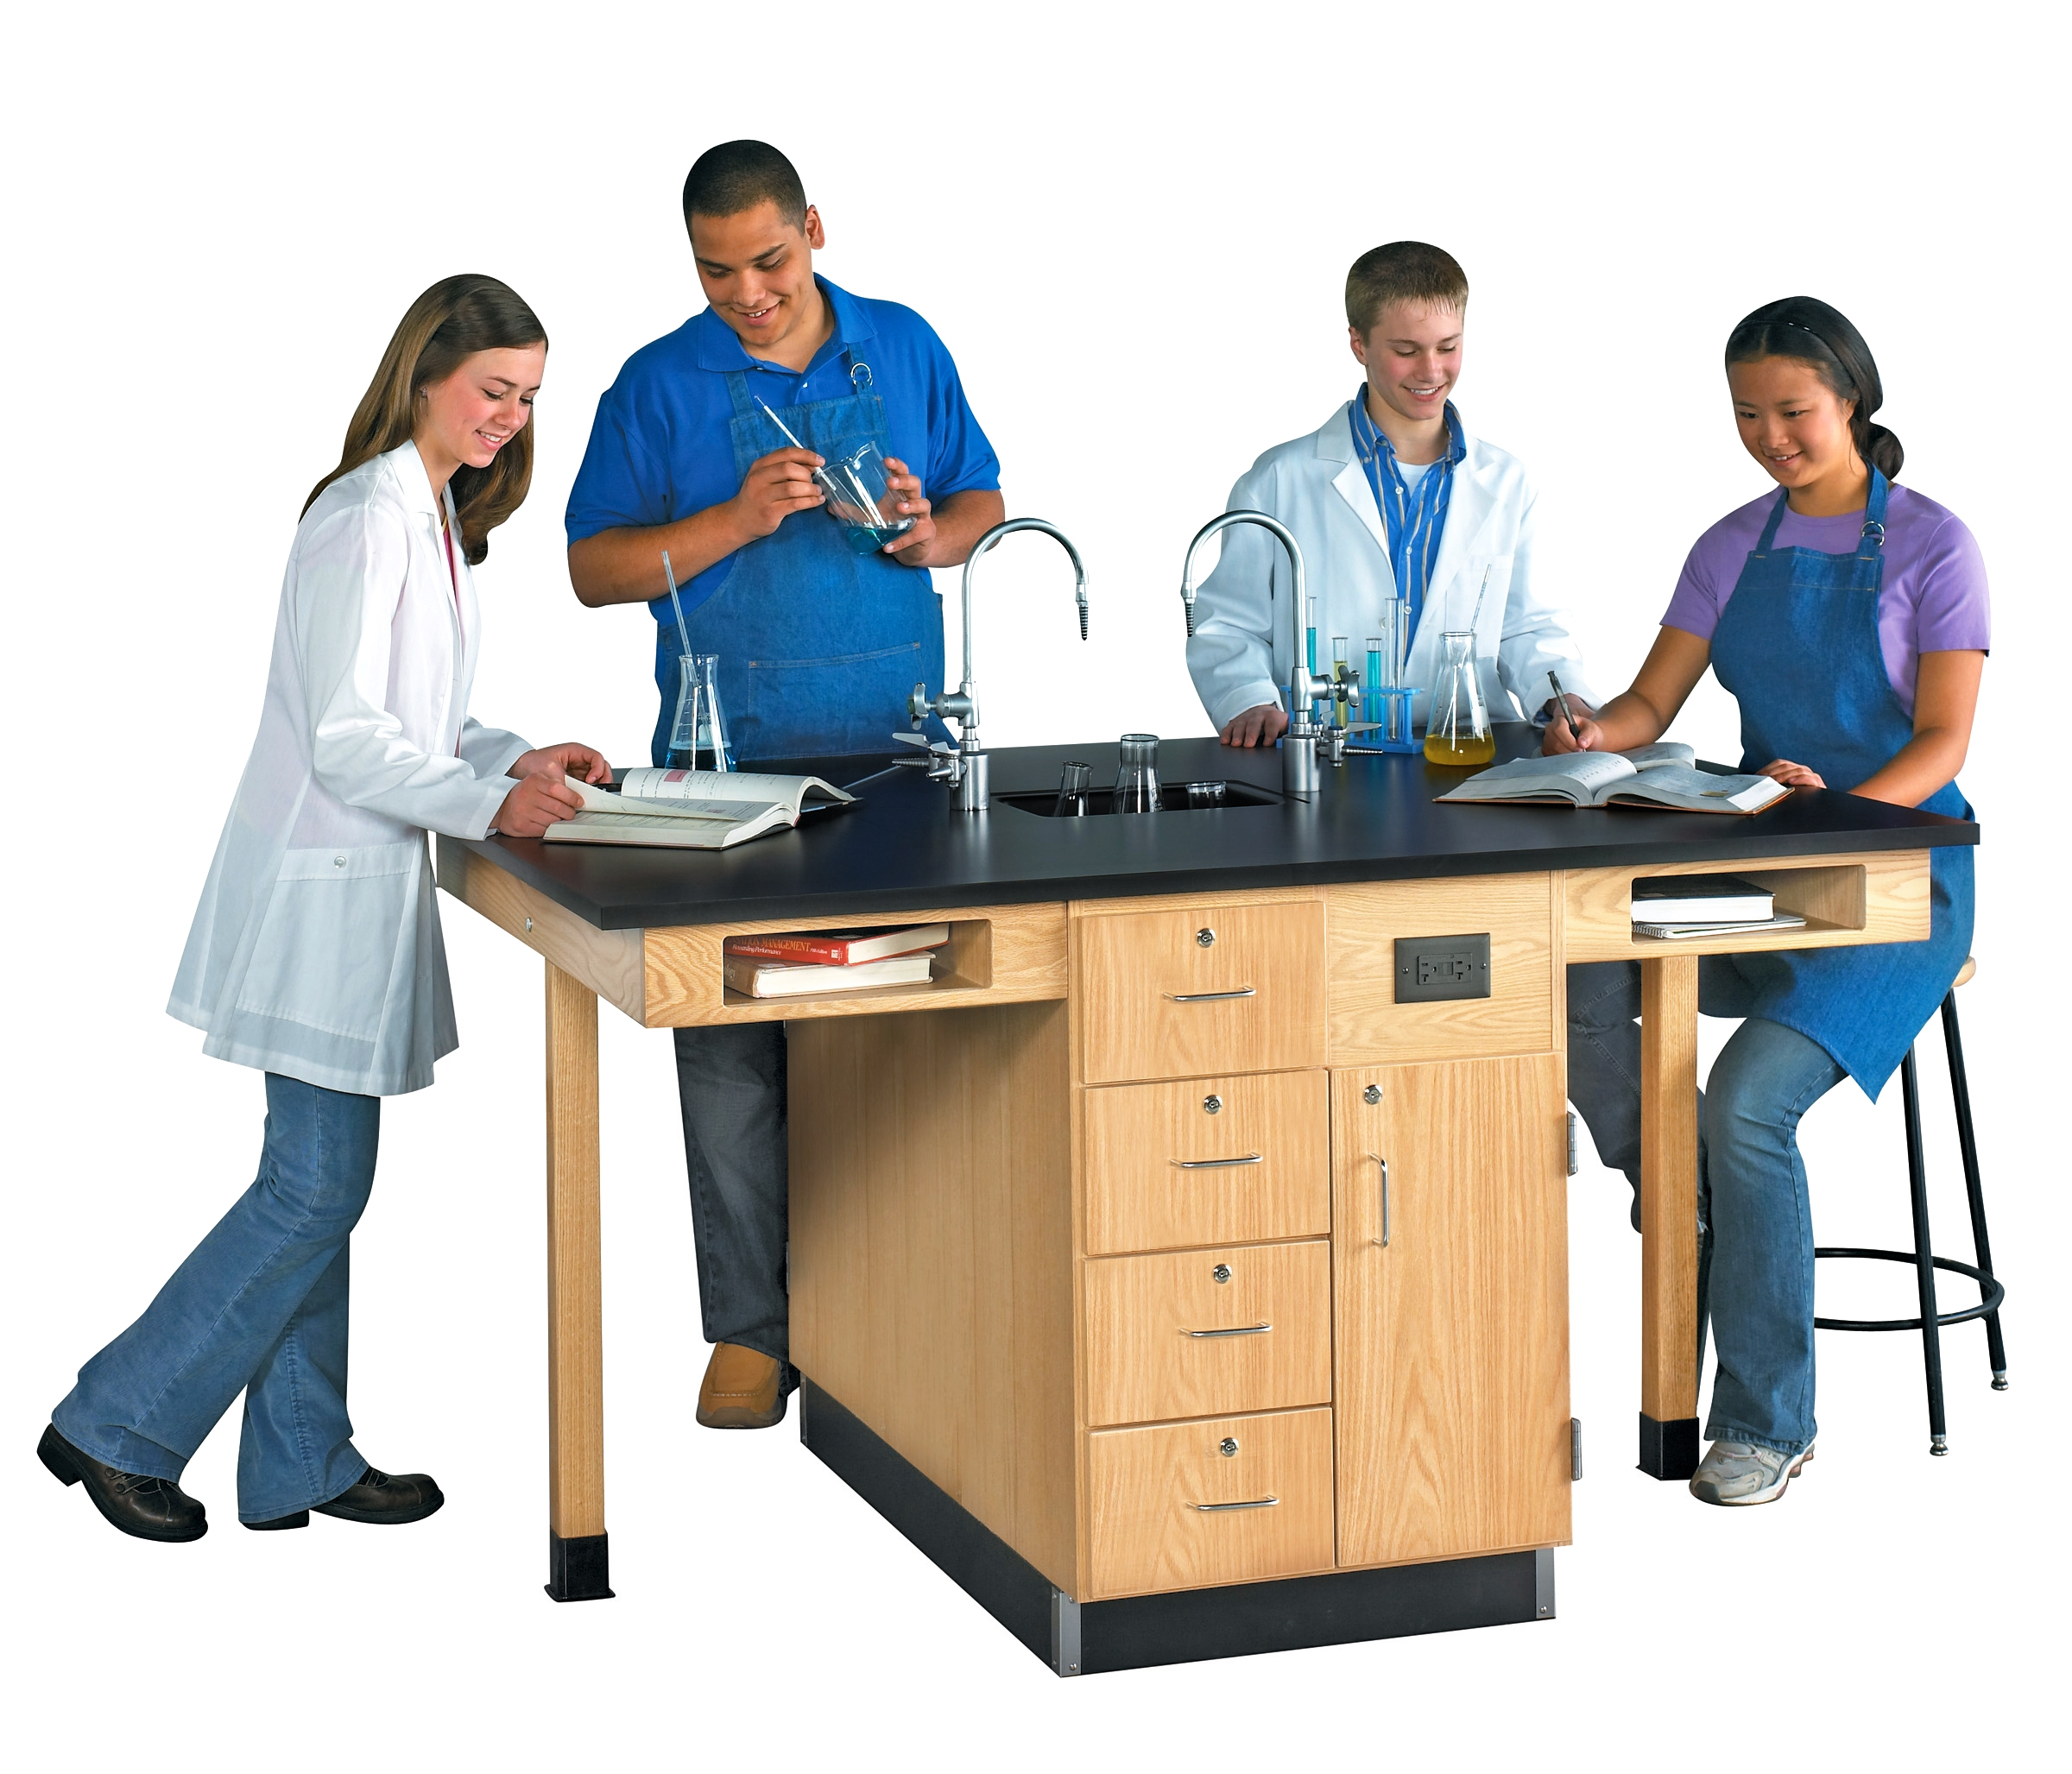 Diversified Woodcrafts 4 Station Service Center with Multi-Storage, Bookcubbies - Epoxy Top